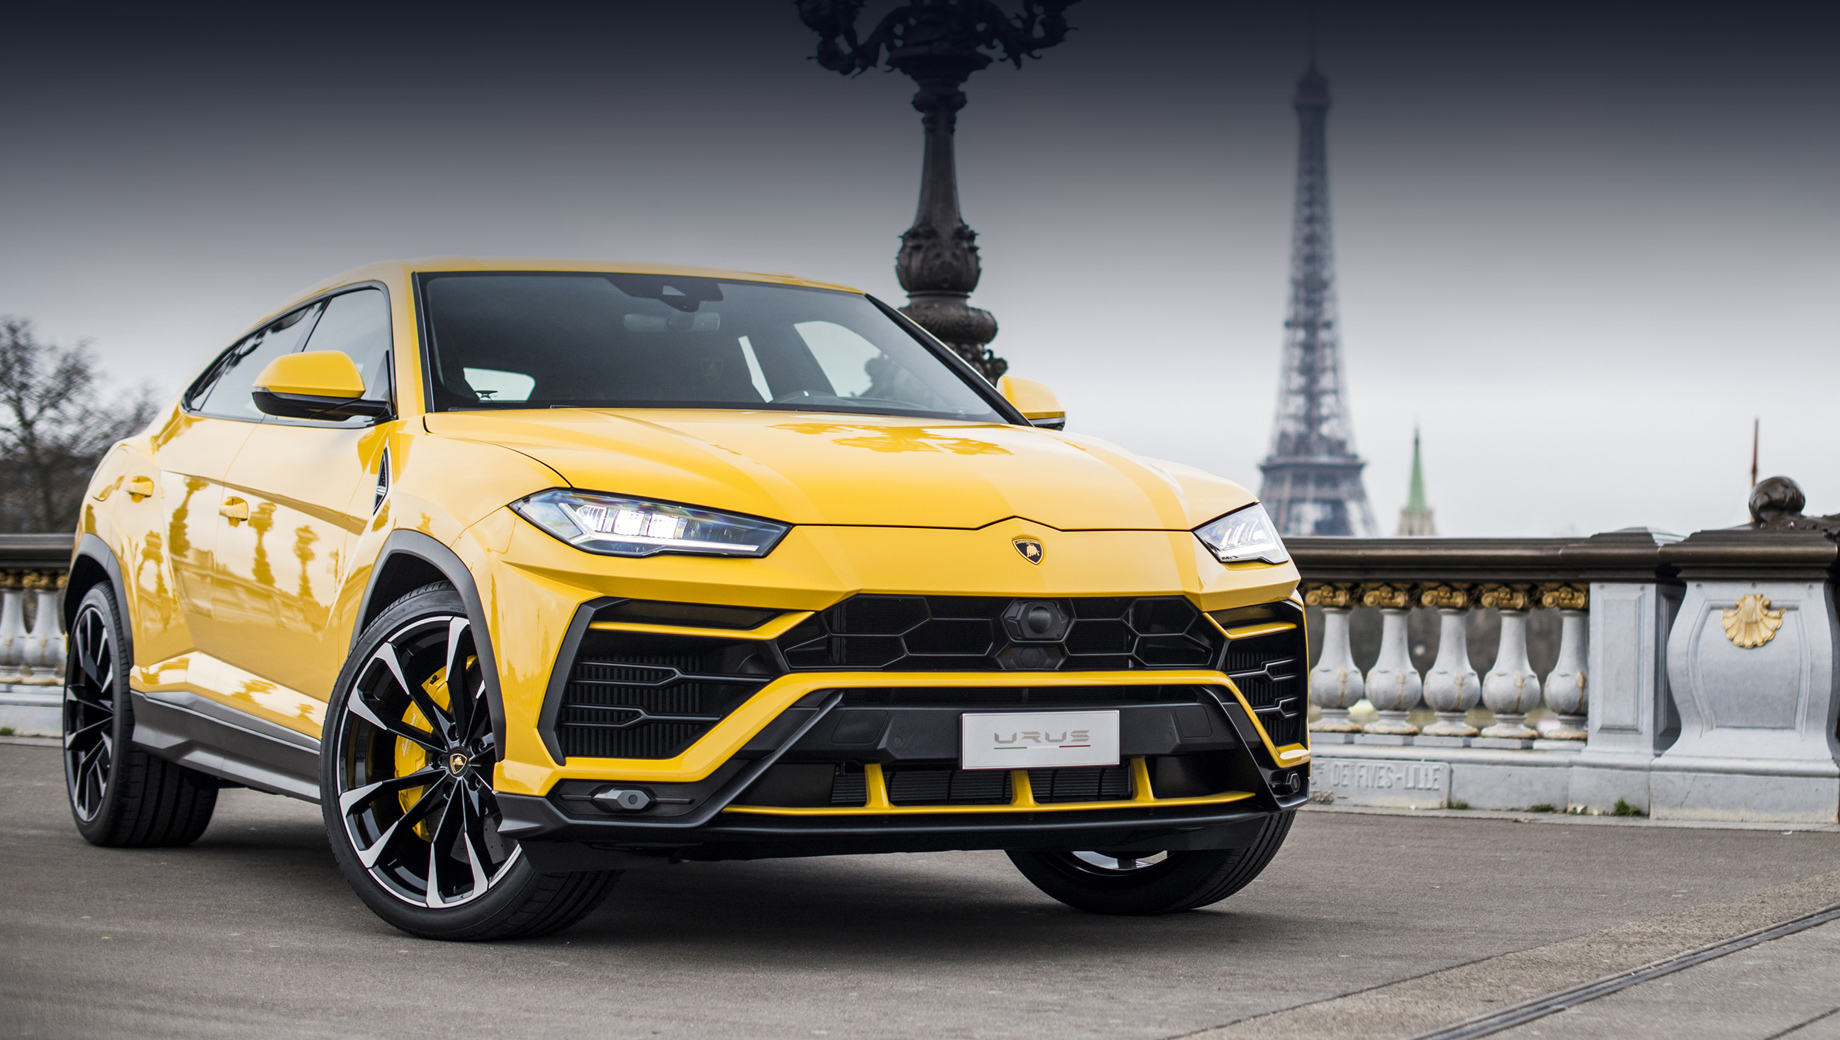 According to Automotive News, Lamborghini might be busy cooperating with Audi and Porsche to design a four-seater electric car, which is far from what it usually does. Reportedly, it will be the fastest vehicle based on the new Scalable Systems Platform (SSP).